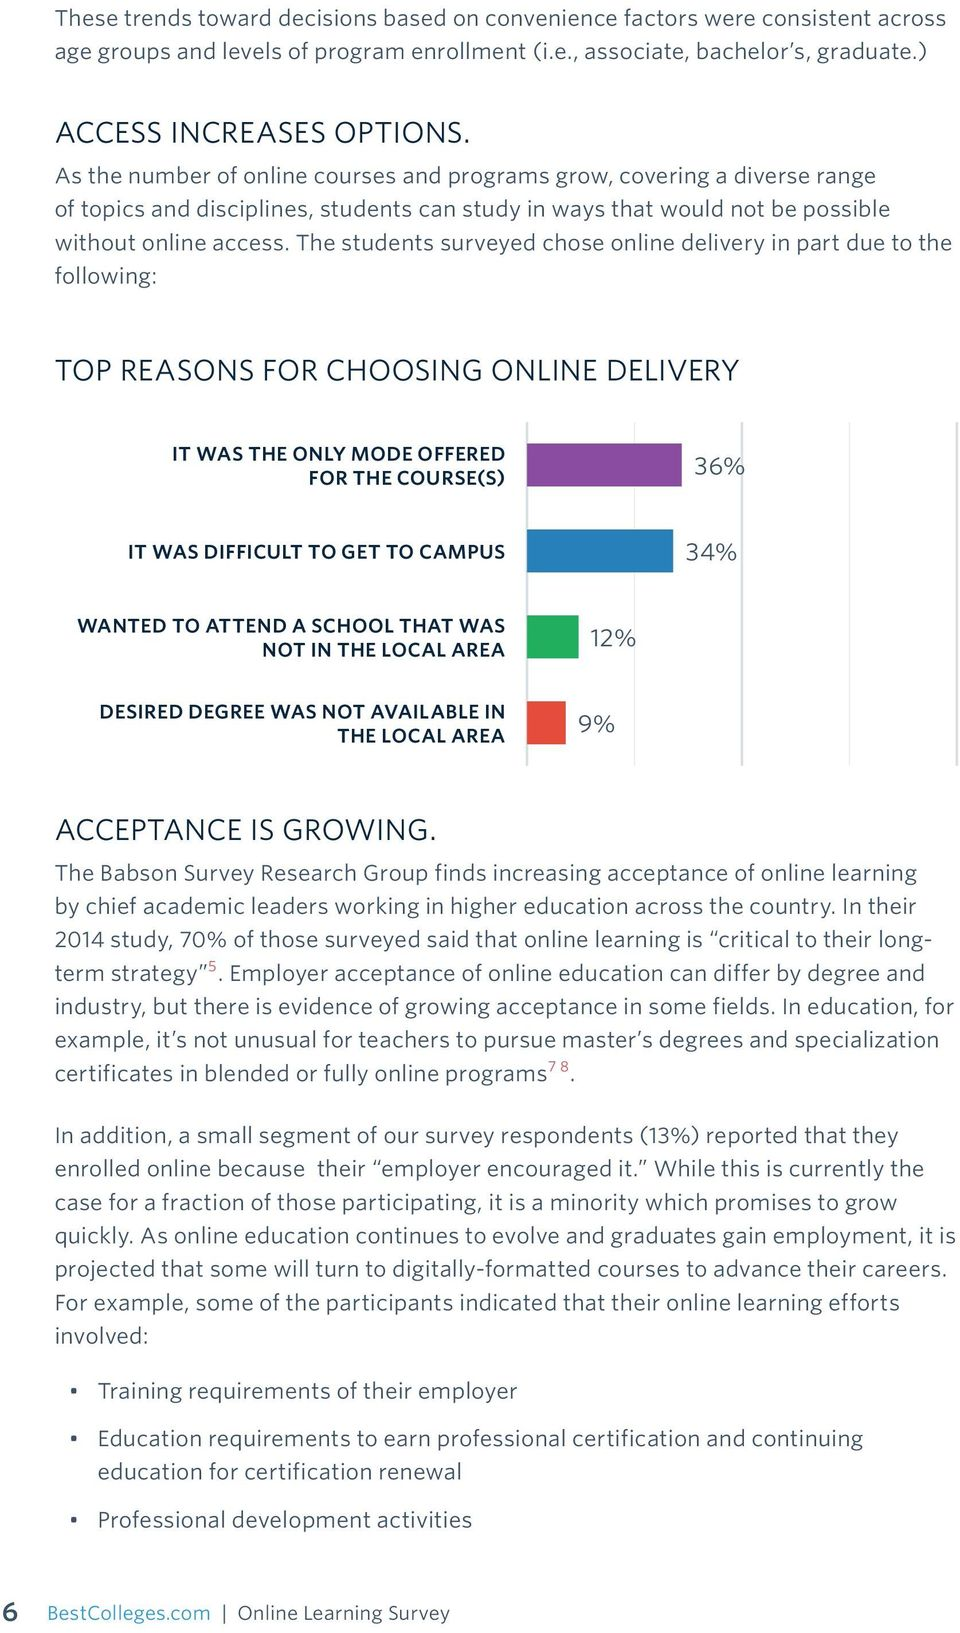 The students surveyed chose online delivery in part due to the following: TOP REASONS FOR CHOOSING ONLINE DELIVERY IT WAS THE ONLY MODE OFFERED FOR THE COURSE(S) 36% IT WAS DIFFICULT TO GET TO CAMPUS